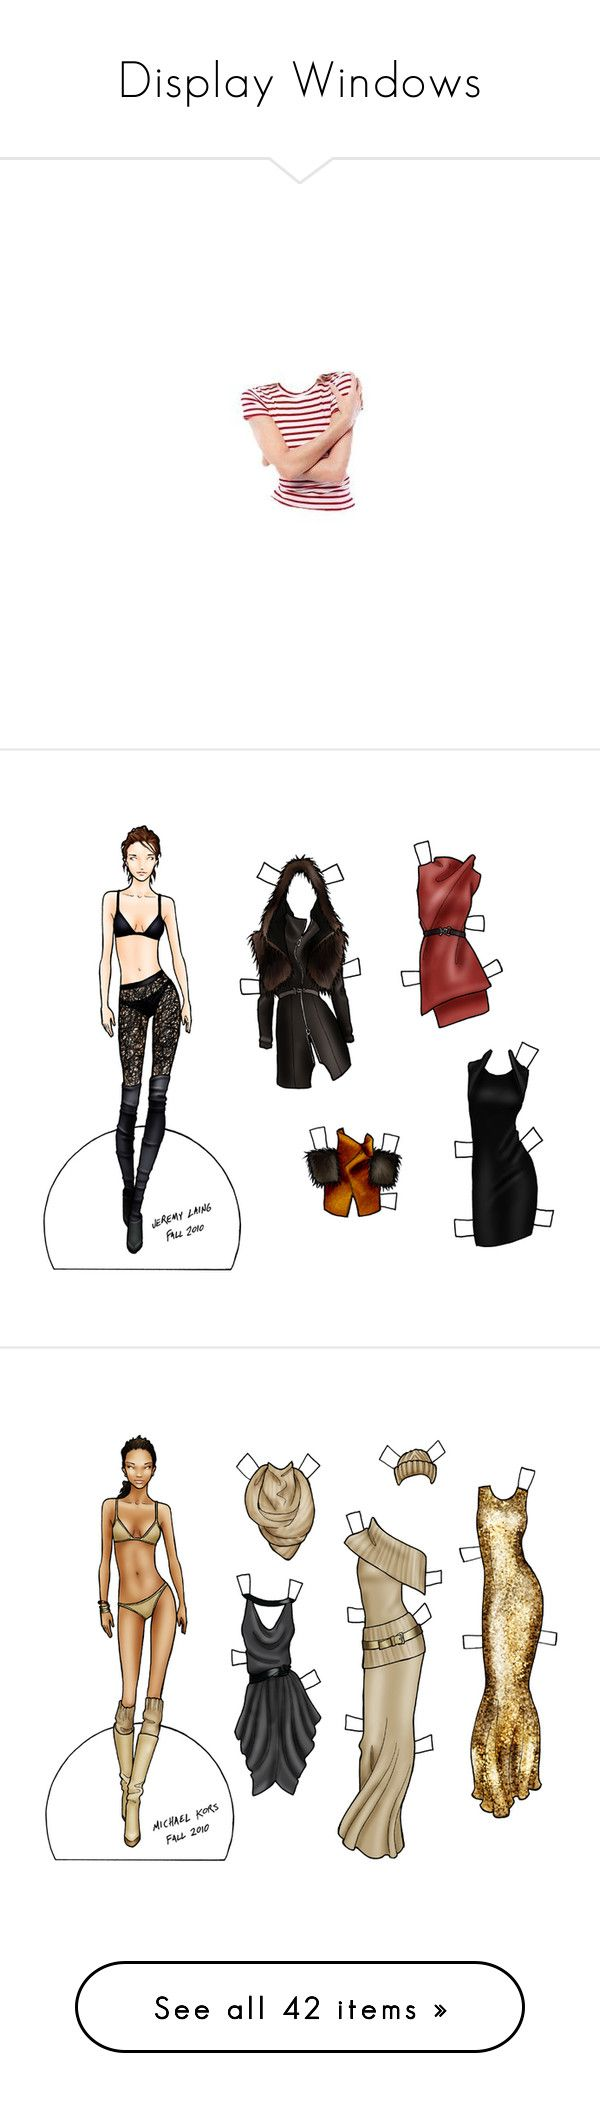 """Display Windows"" by cemen ❤ liked on Polyvore featuring doll parts, dolls, body parts, body, drawings, paper doll, backgrounds, sketch, draw and paper dolls"